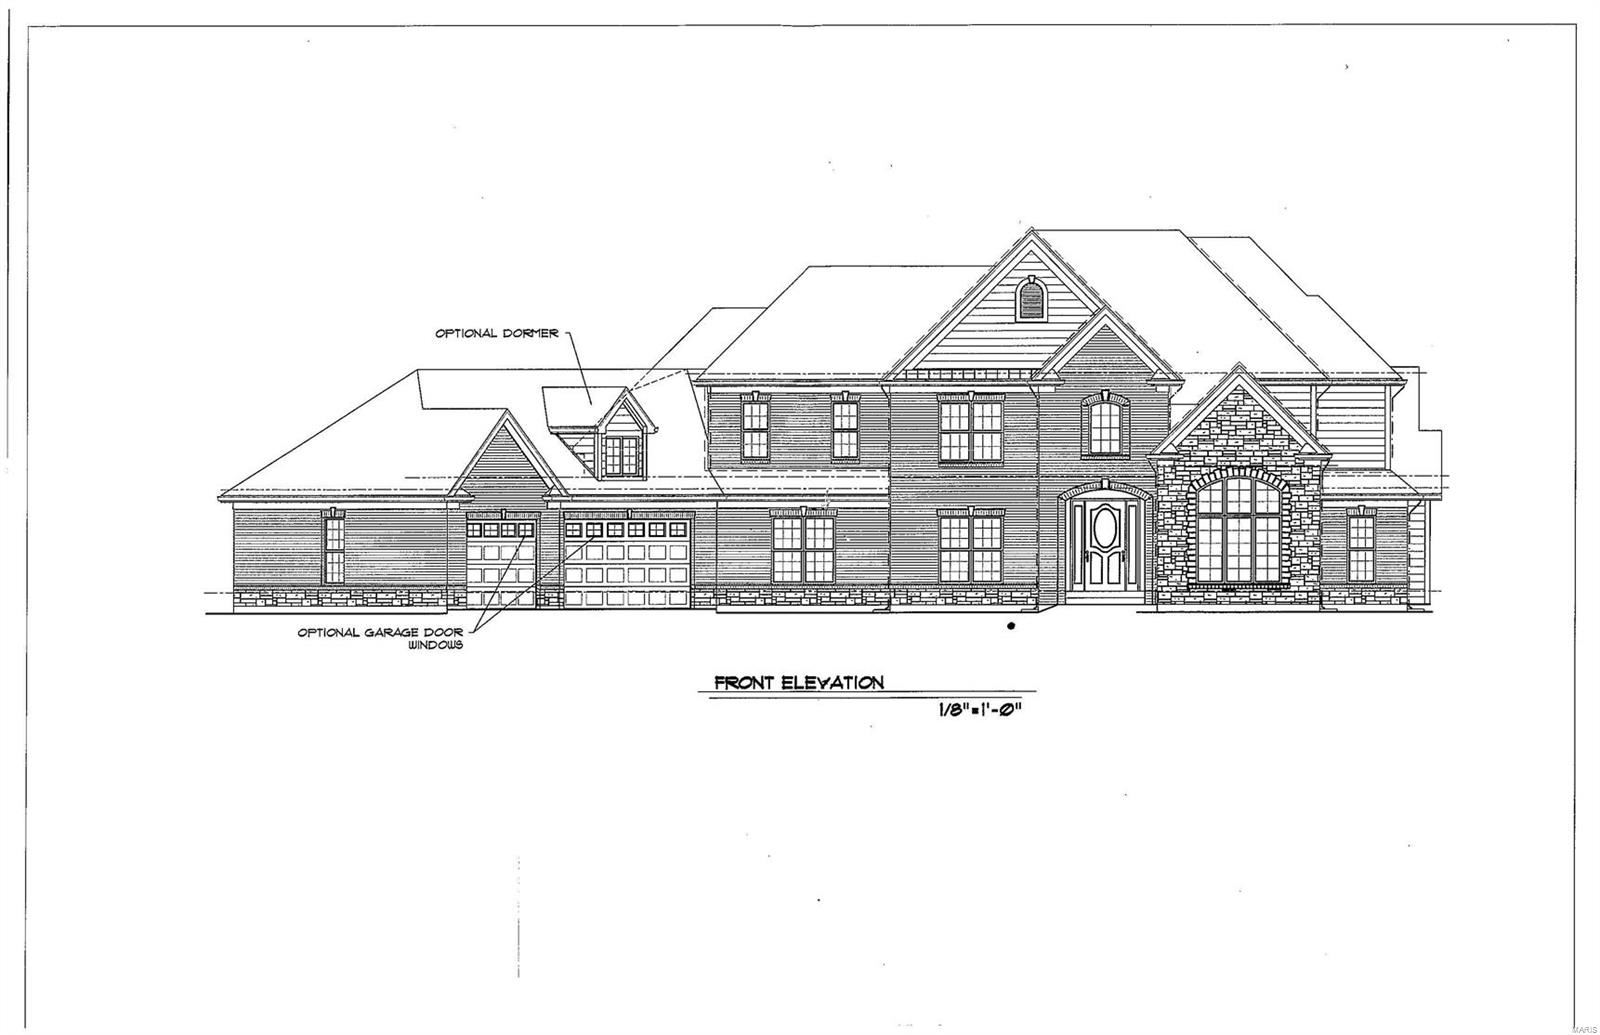 13237 Stone Ct TBB (Lot 3), Town and Country, MO 63131 - MLS#: 20056397